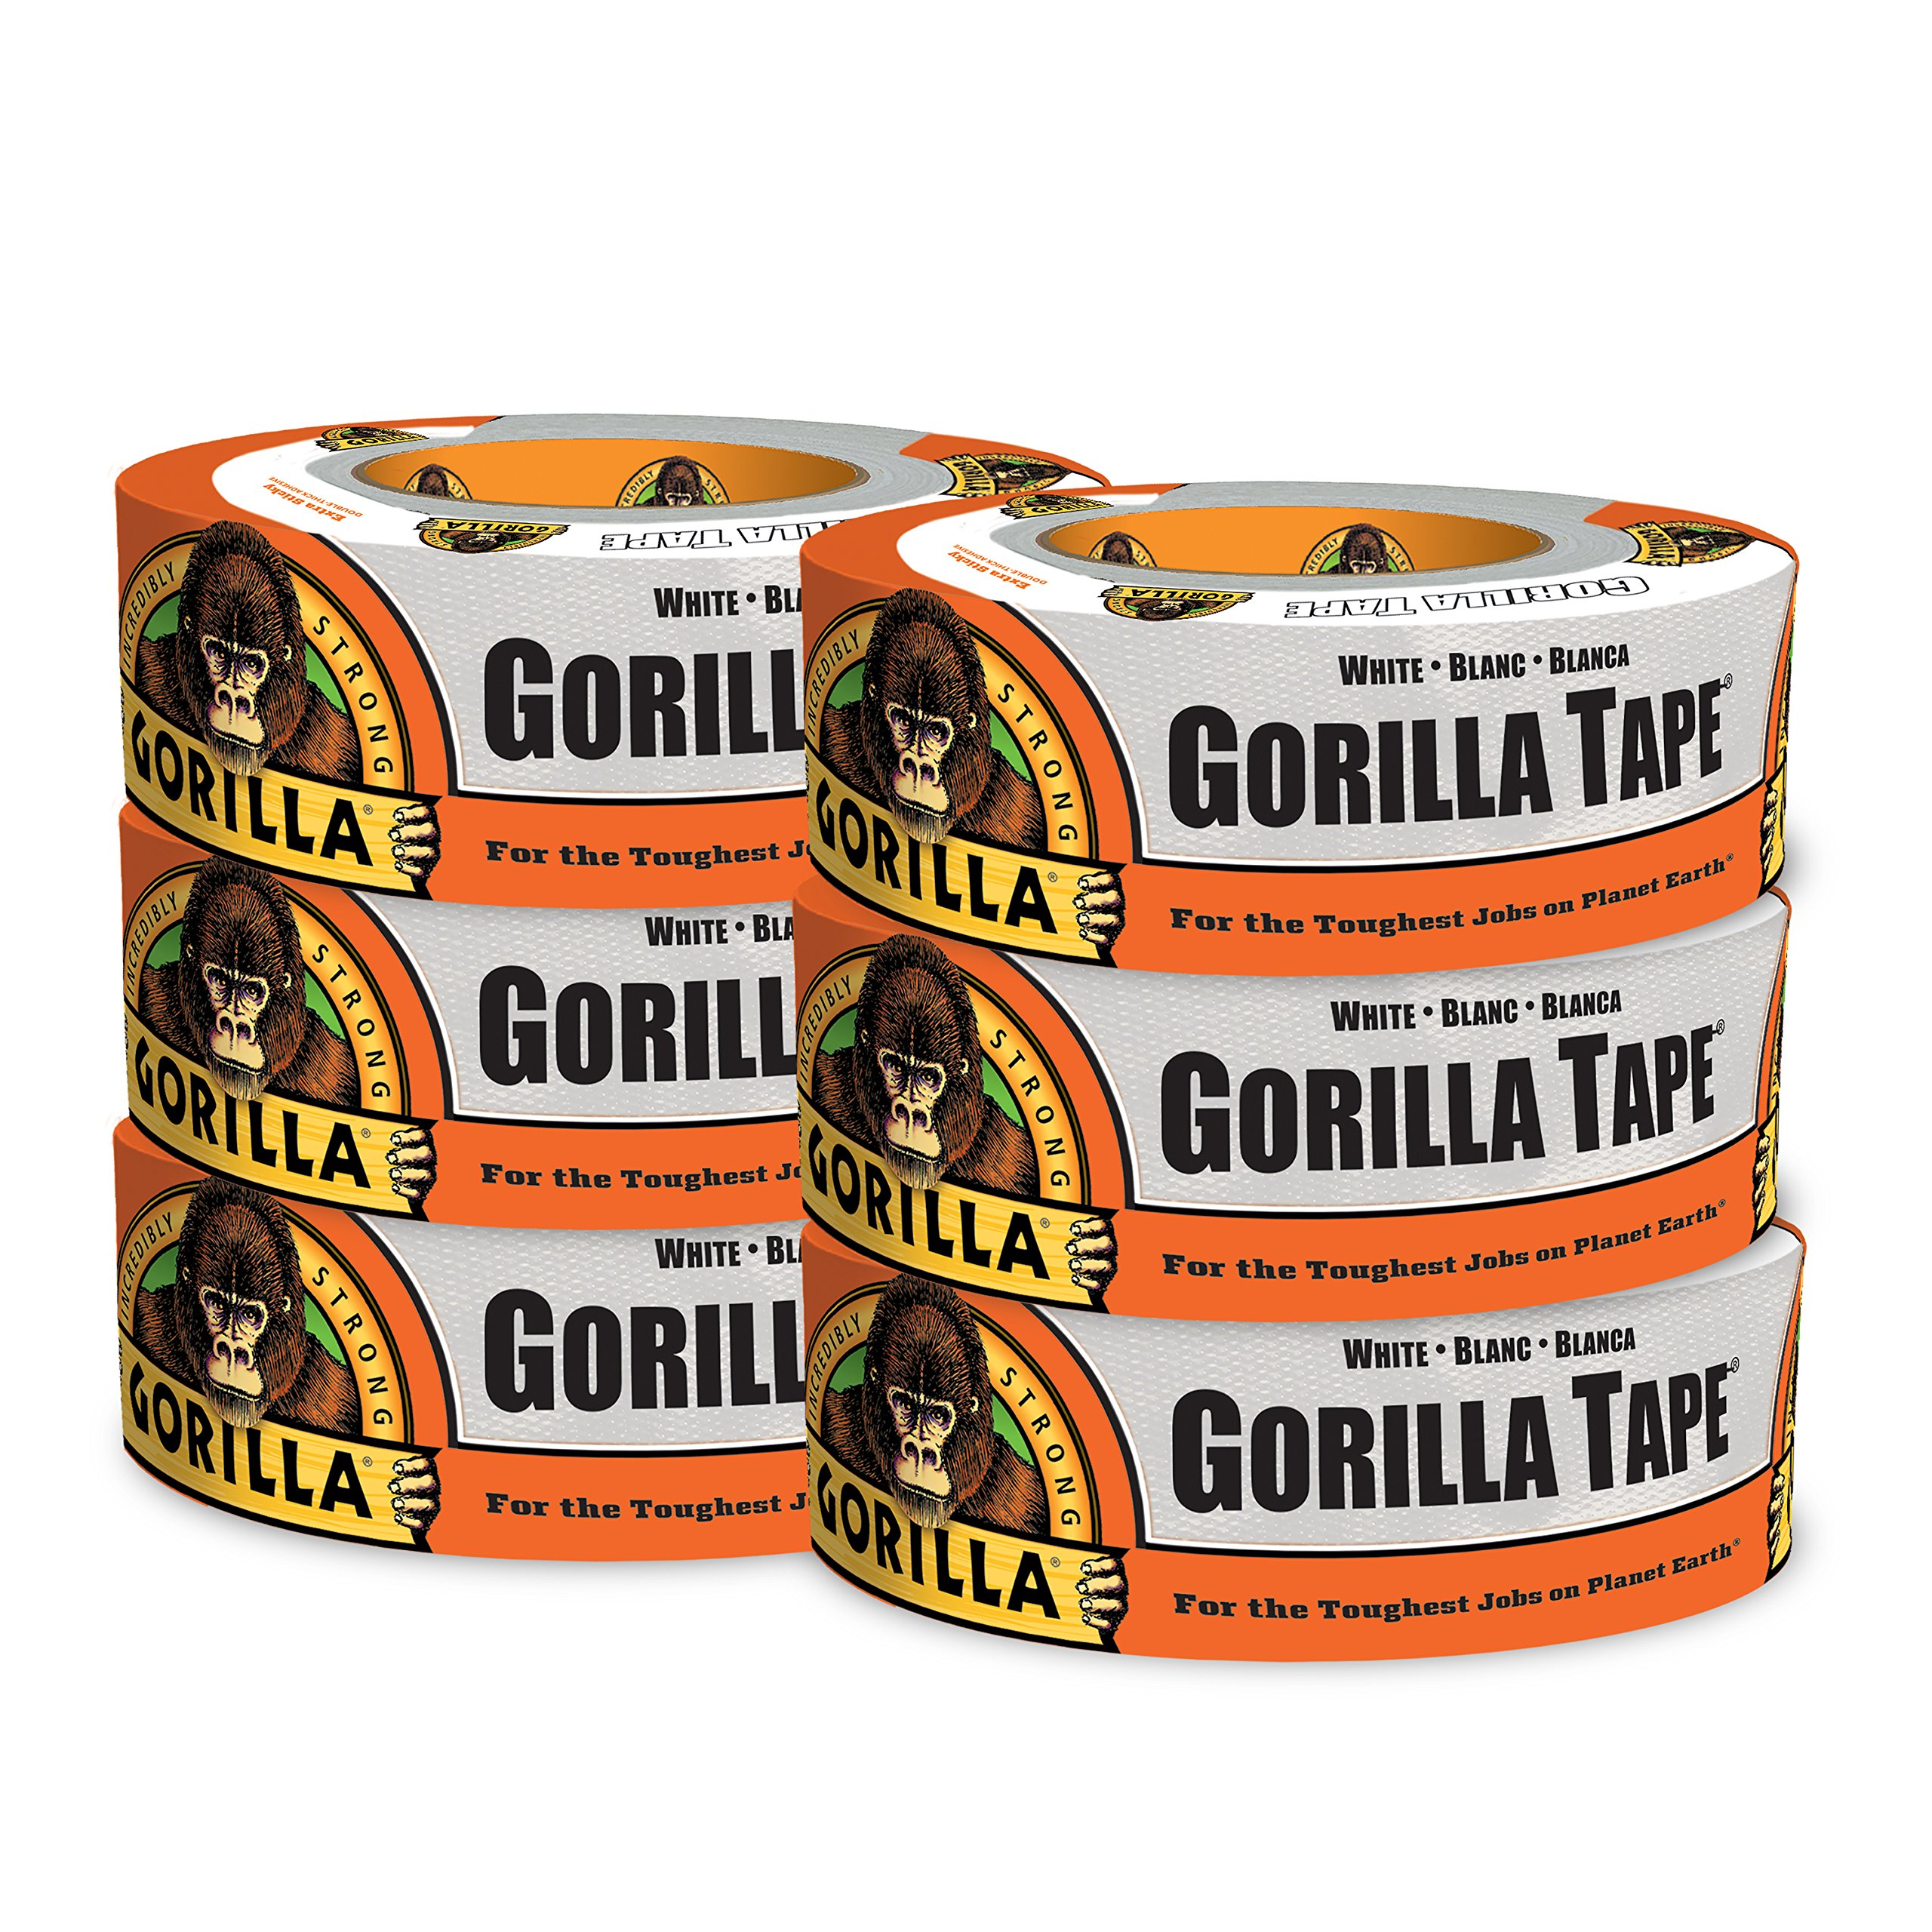 Gorilla Tape, White Duct Tape, 1.88'' x 30 yd, White, (Pack of 6) by Gorilla